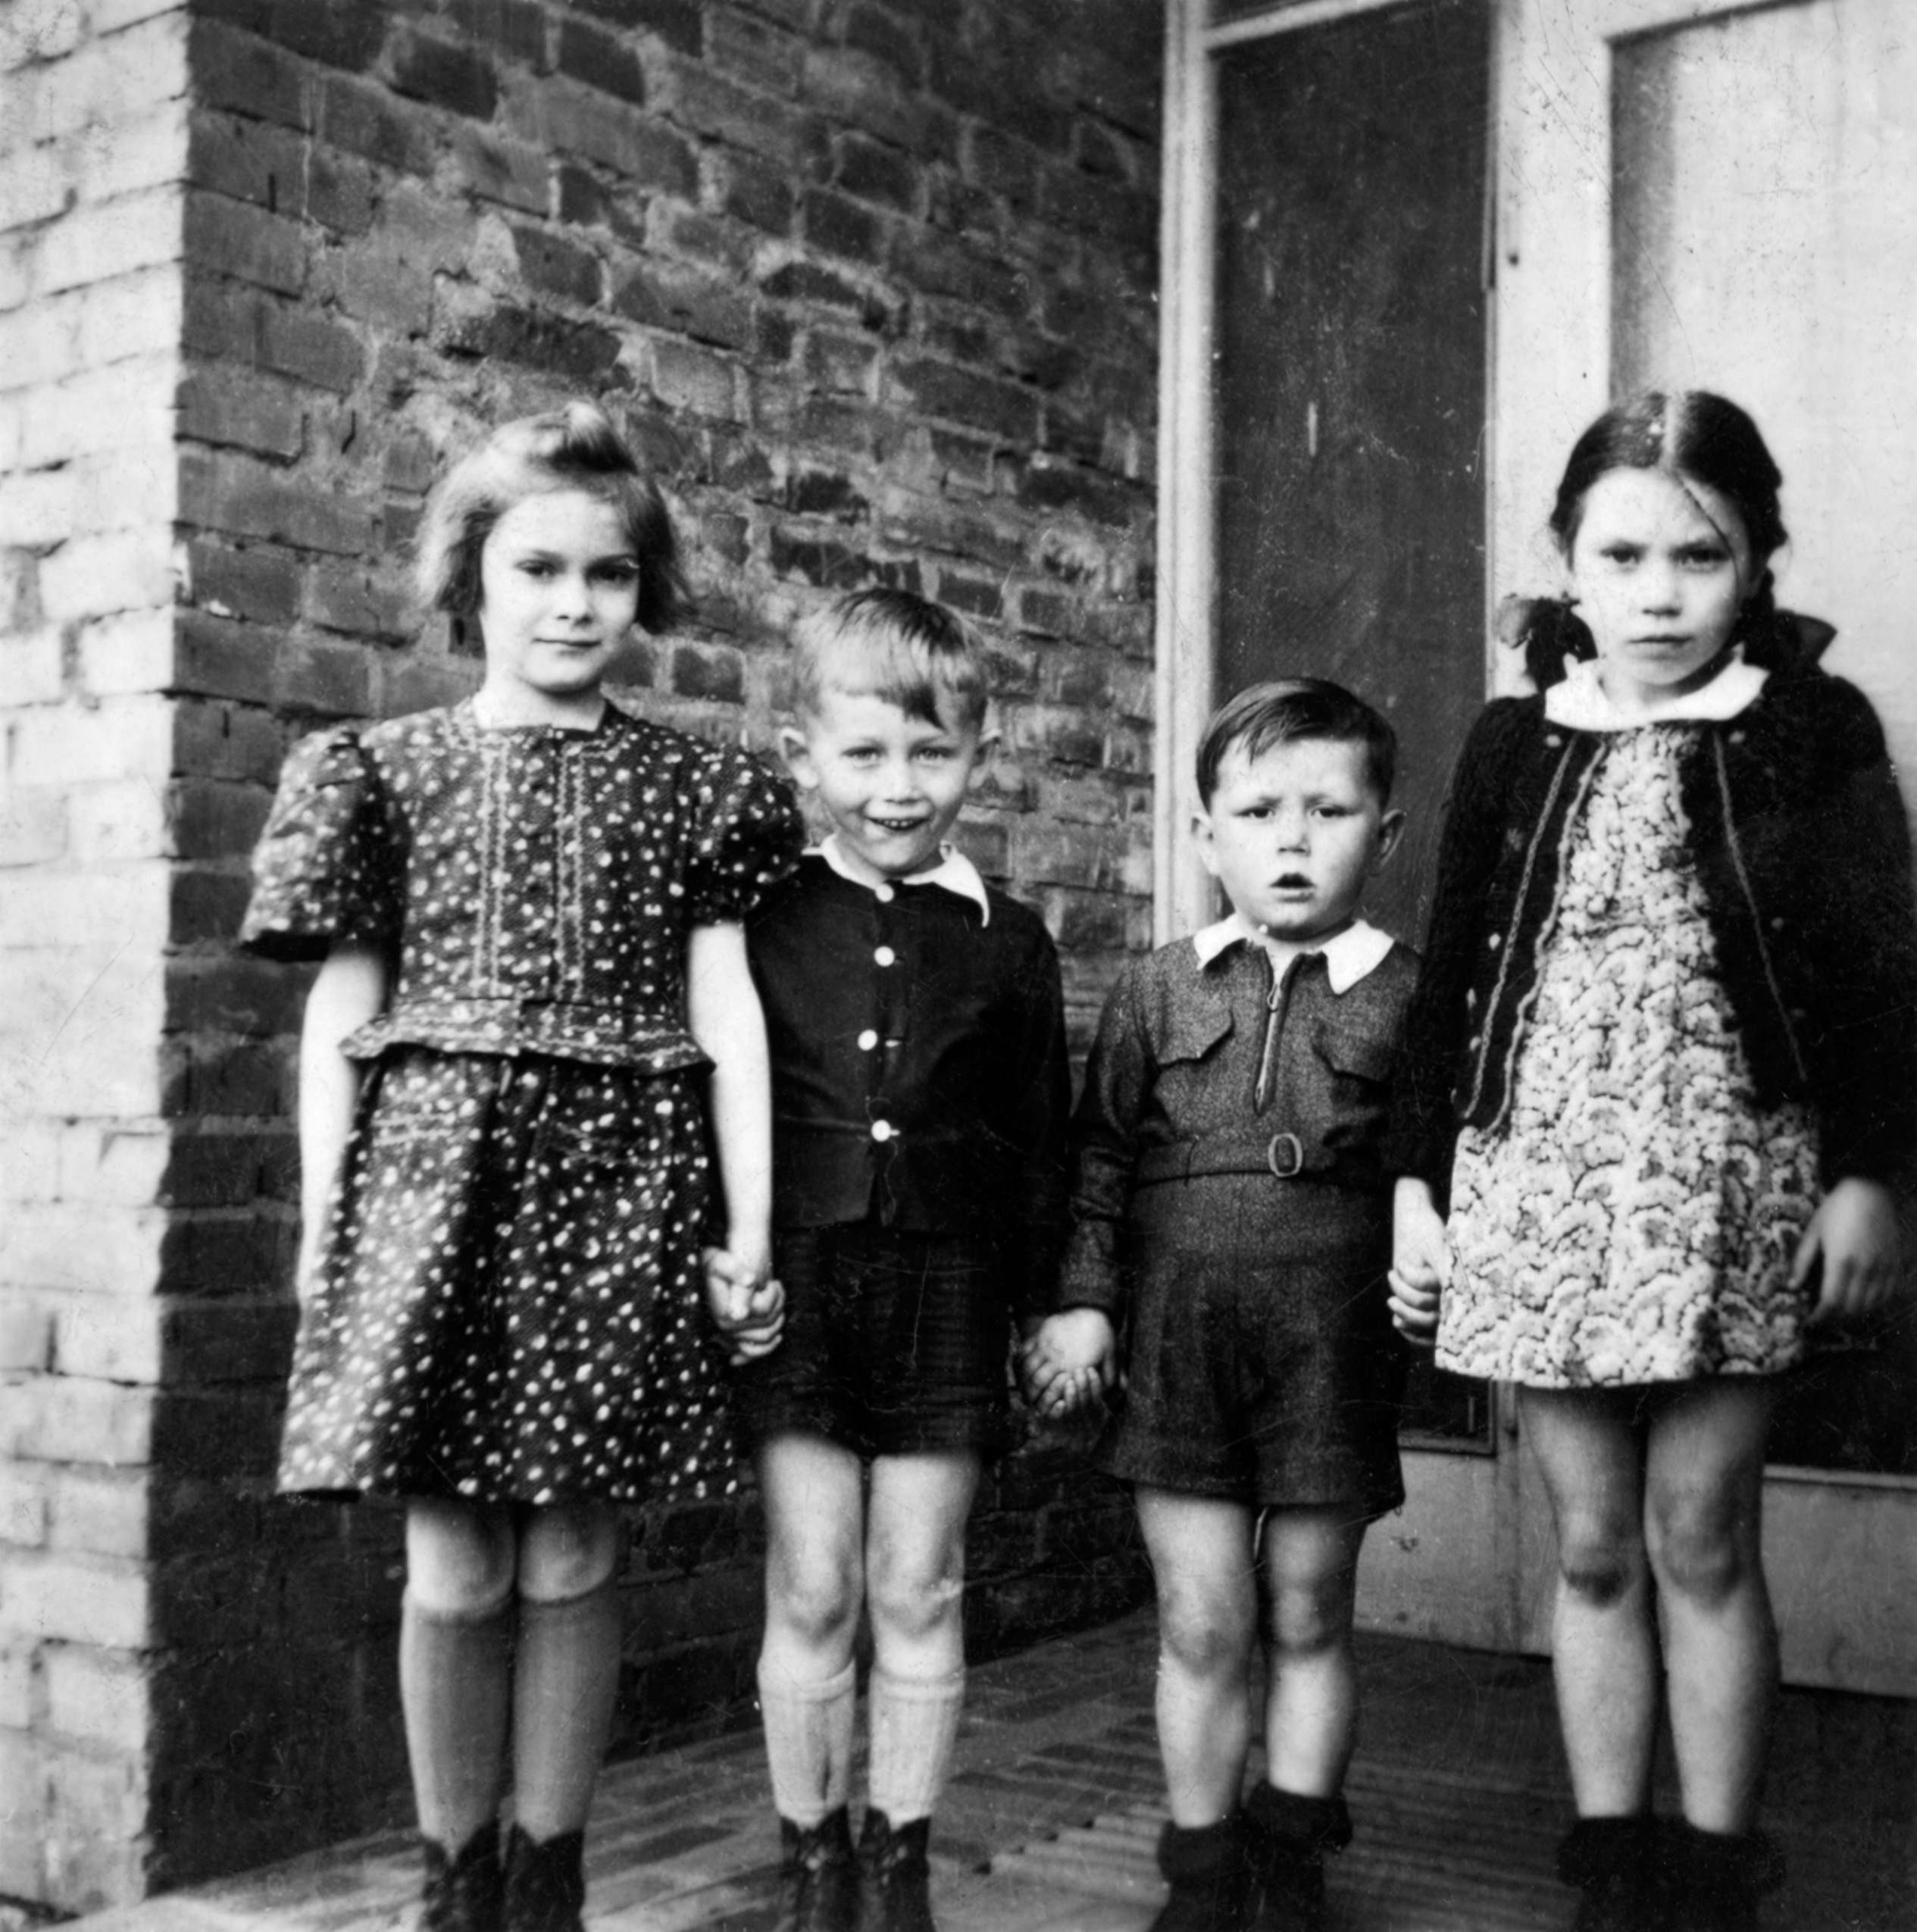 Dieter (2nd from right) and his sister Christel (right), 1944 Klein-Kunzendorf, CSR.